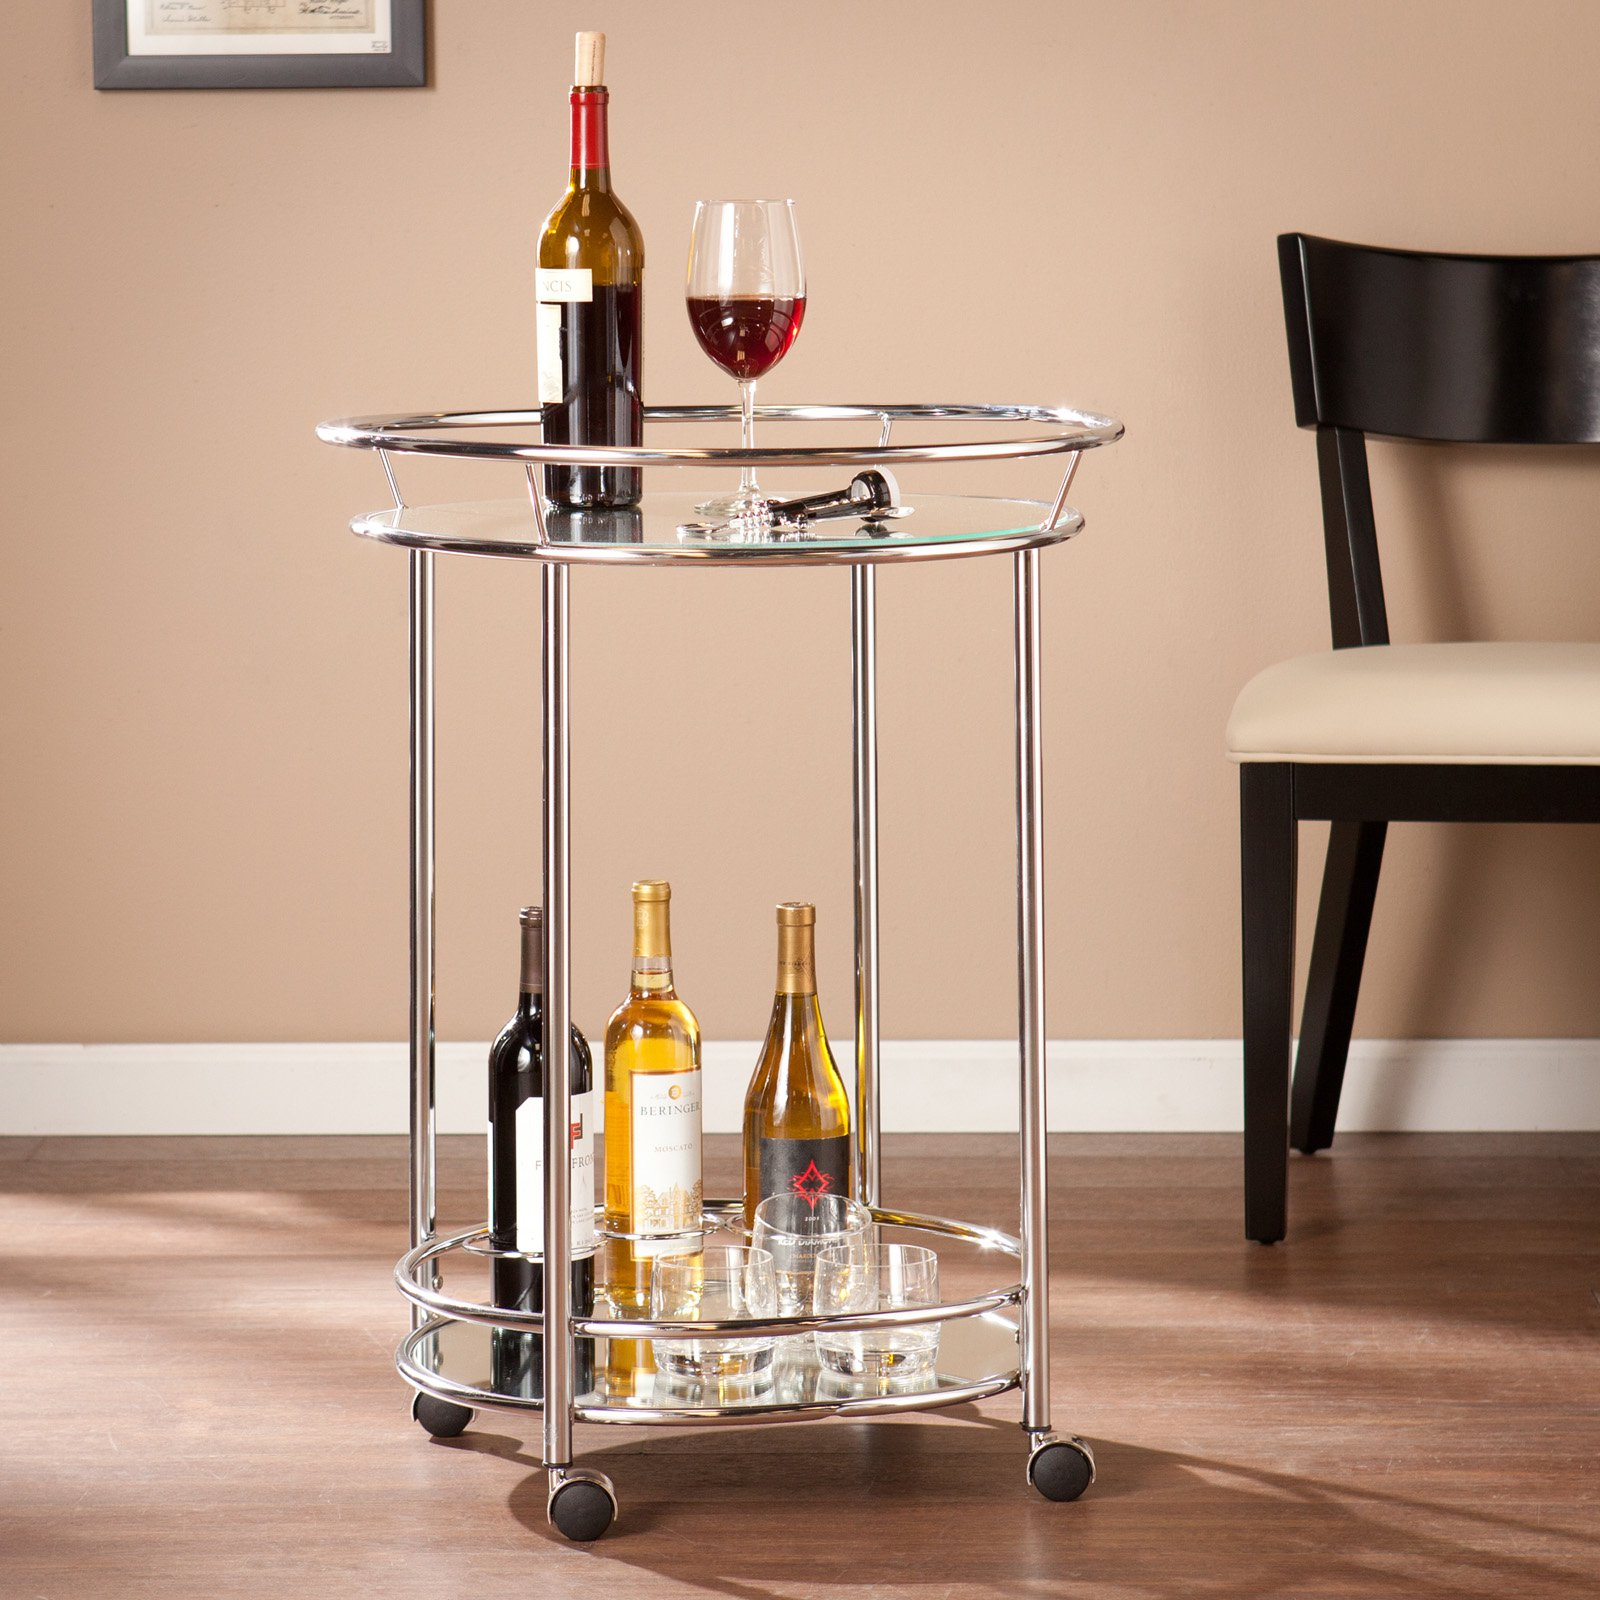 Southern Enterprises Cressida Bar Cart - Chrome